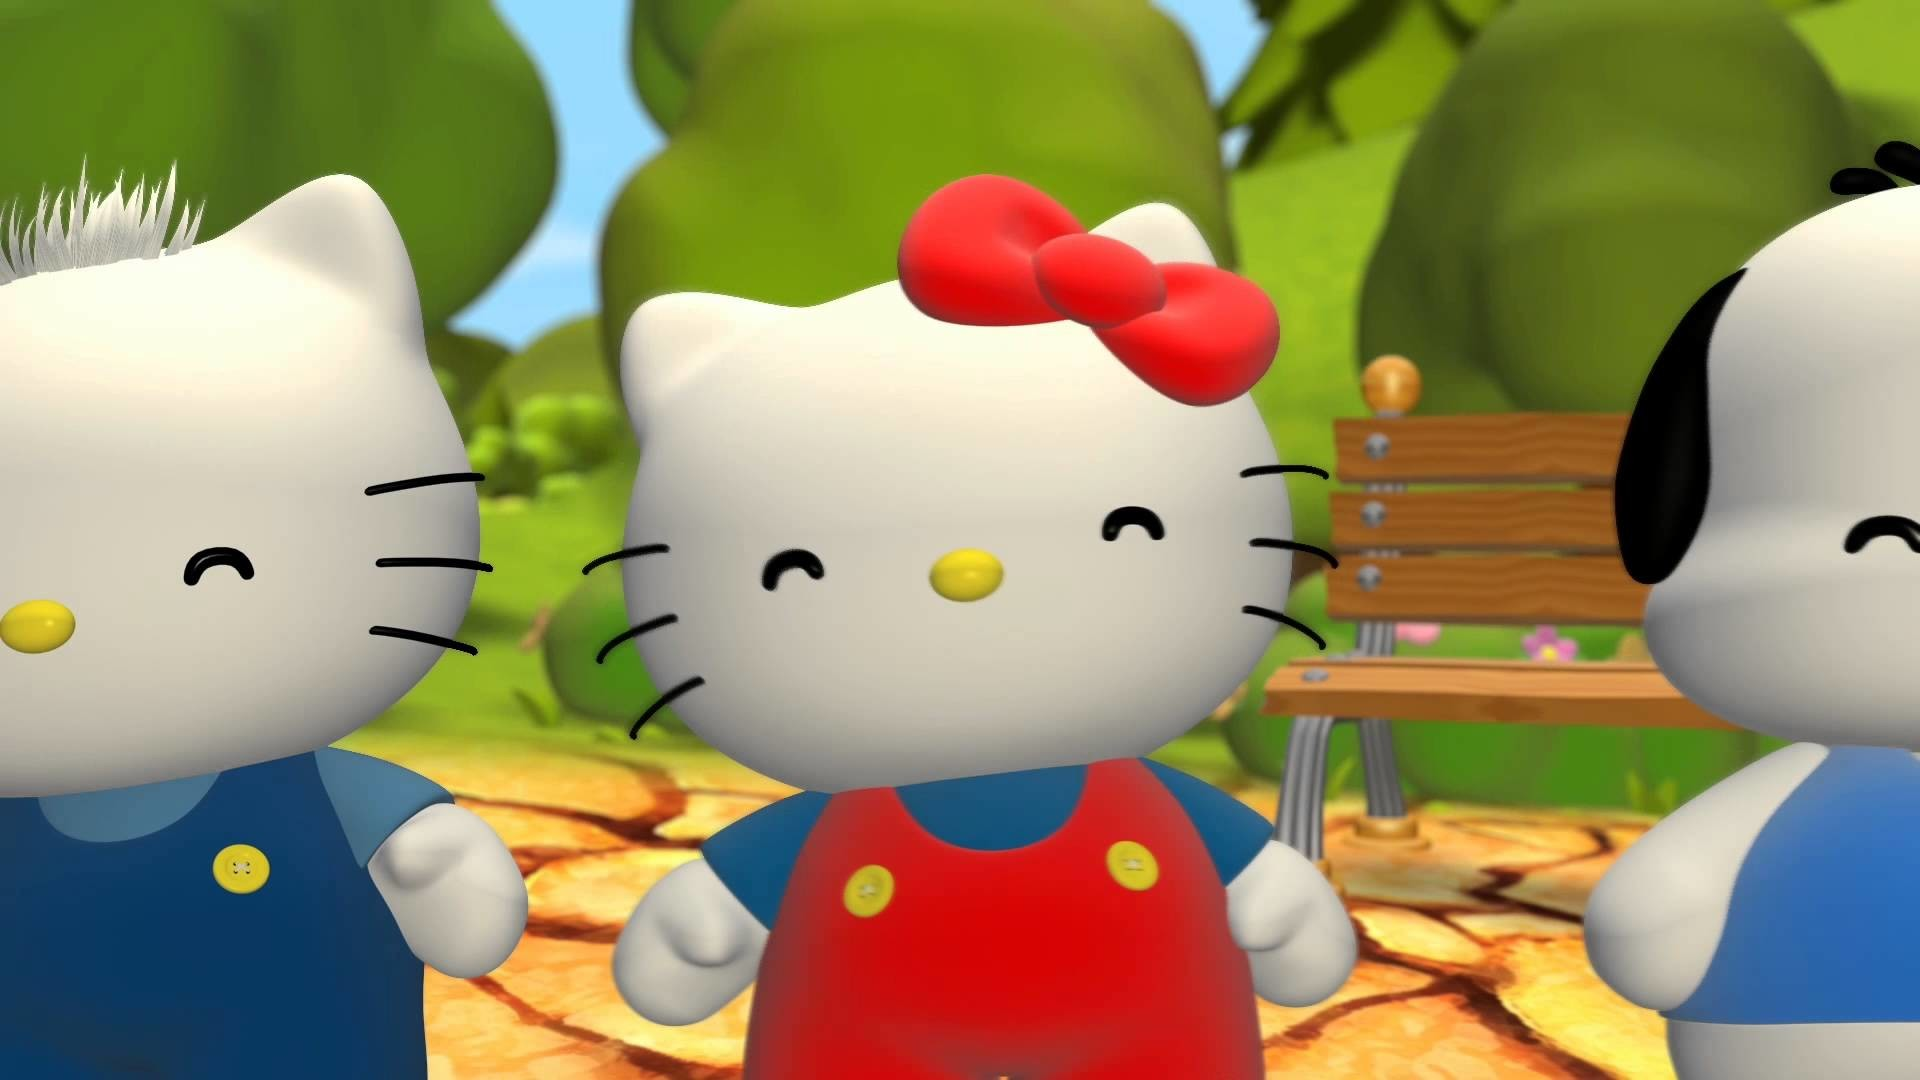 Wallpapers Hd Hello Kitty Hello Kitty And Friends Wallpaper 57 Images